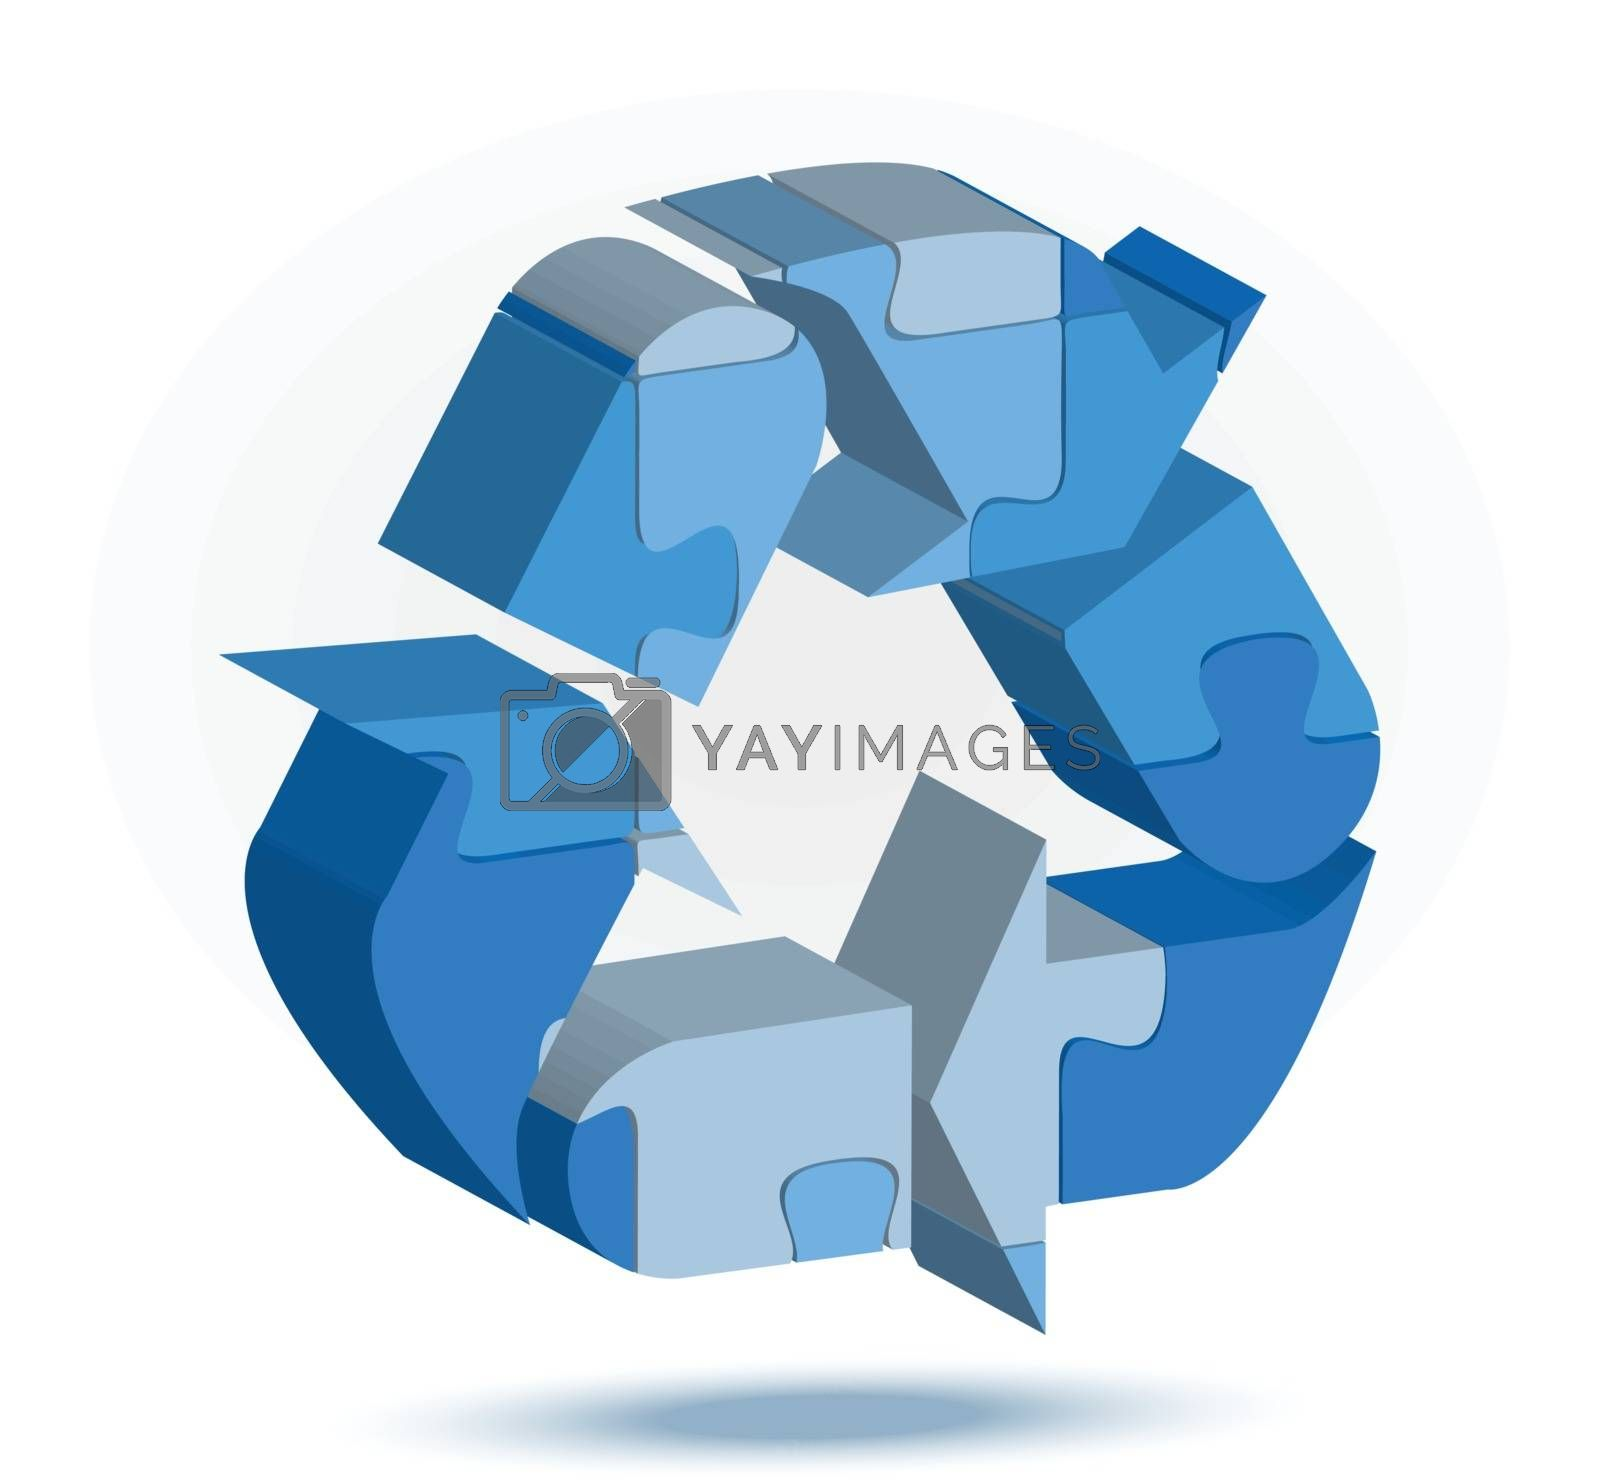 recycling facility icon in puzzle by Istanbul2009